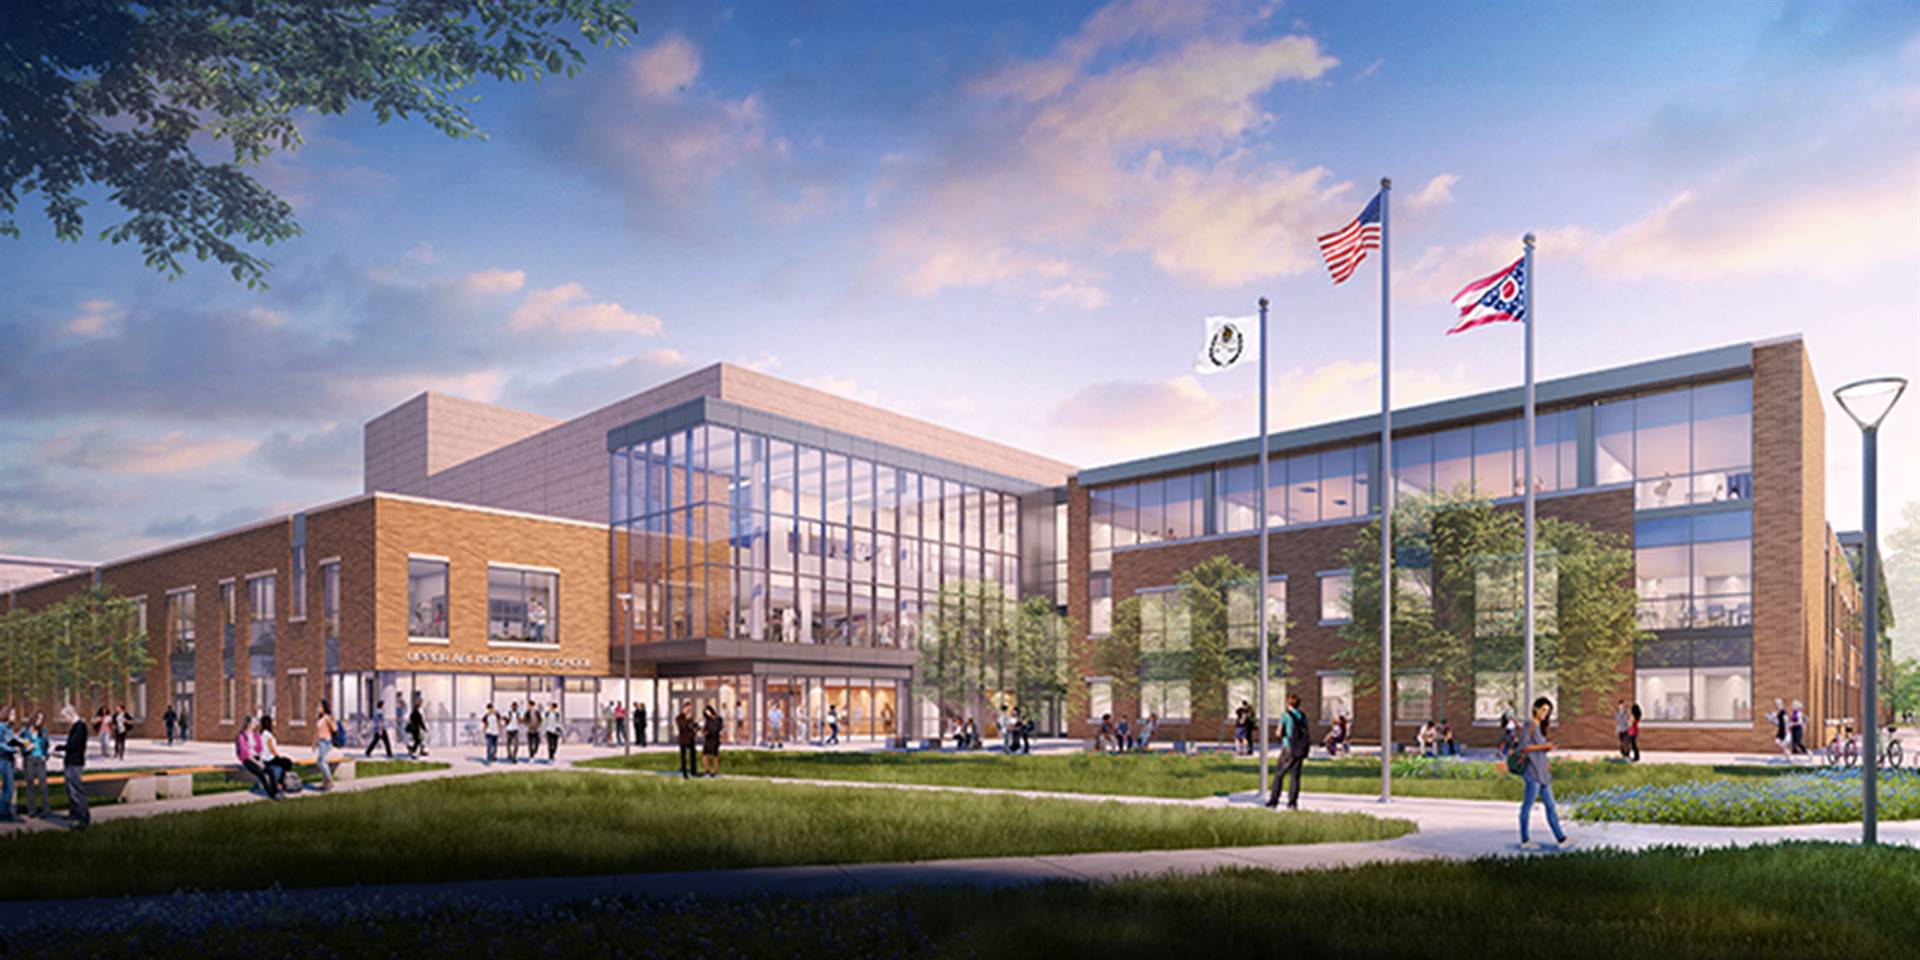 The new Upper Arlington High School